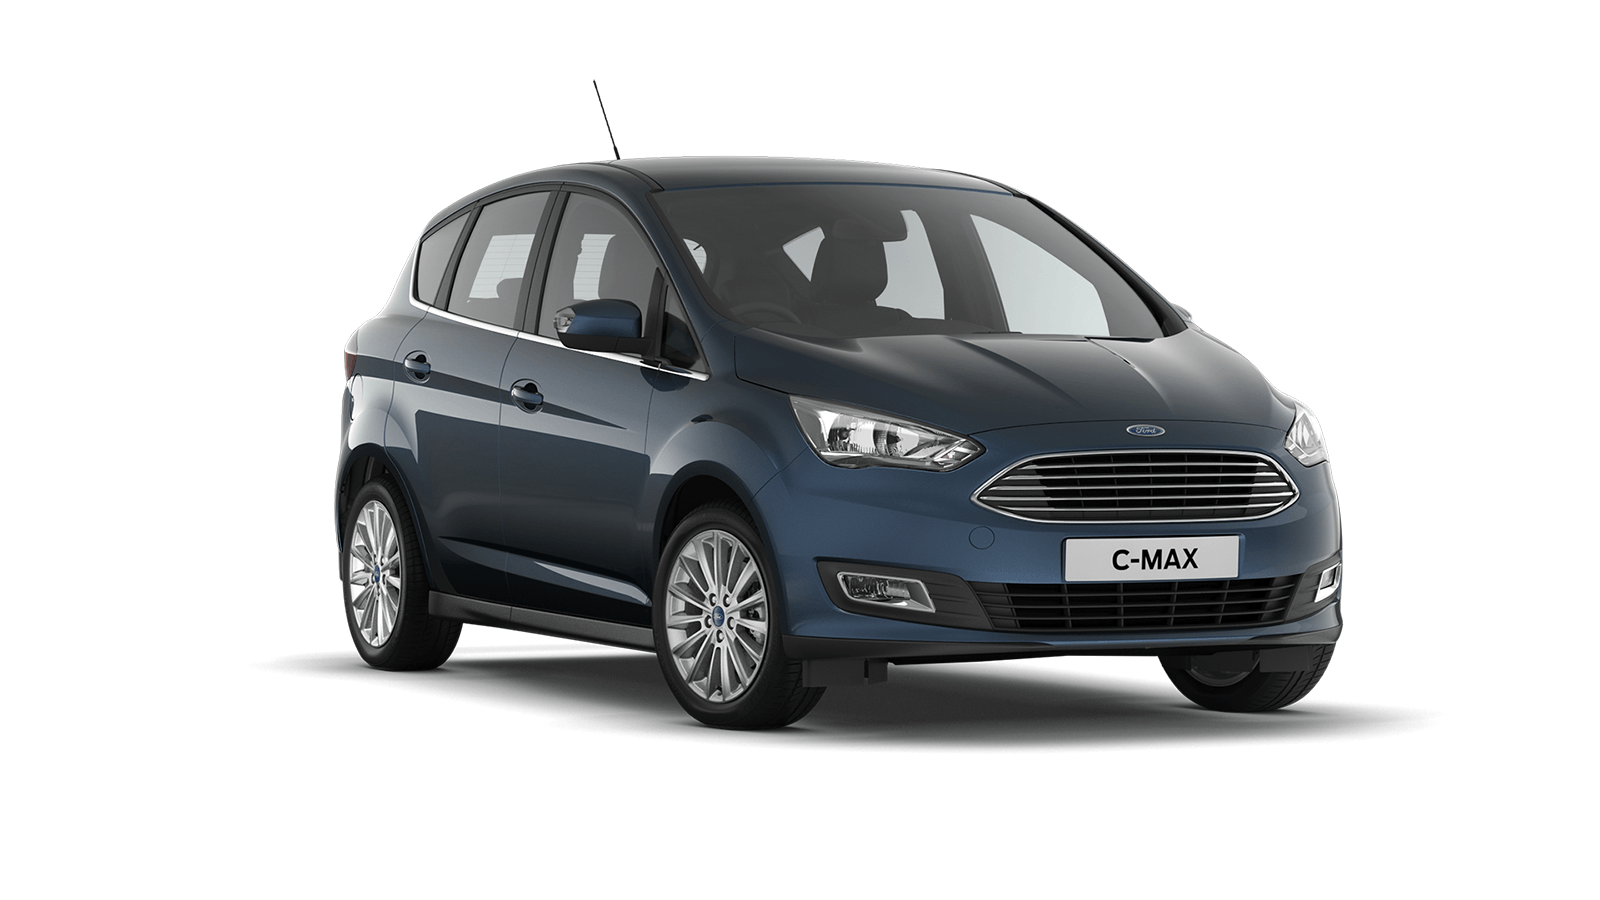 New Ford C-MAX at Guthrie Bros